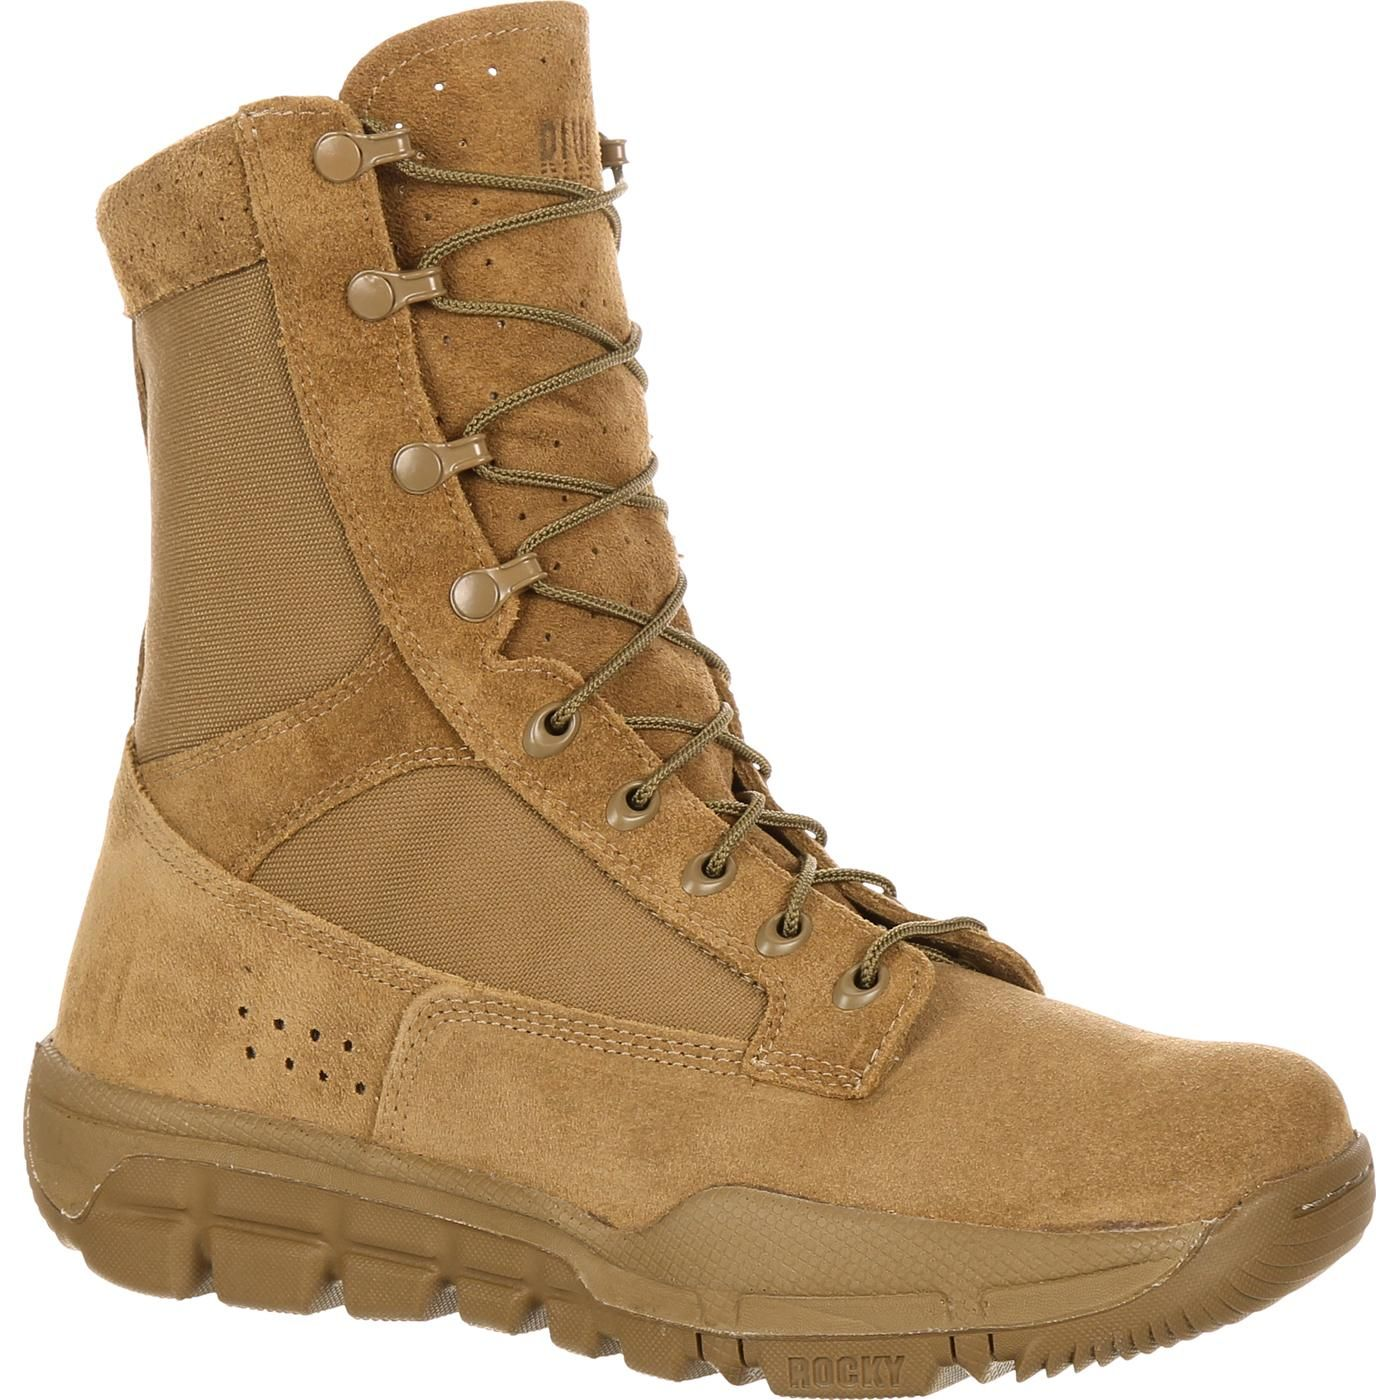 Rocky Lightweight Commercial Military Boot In 2020 Military Boots Tactical Boots Boots